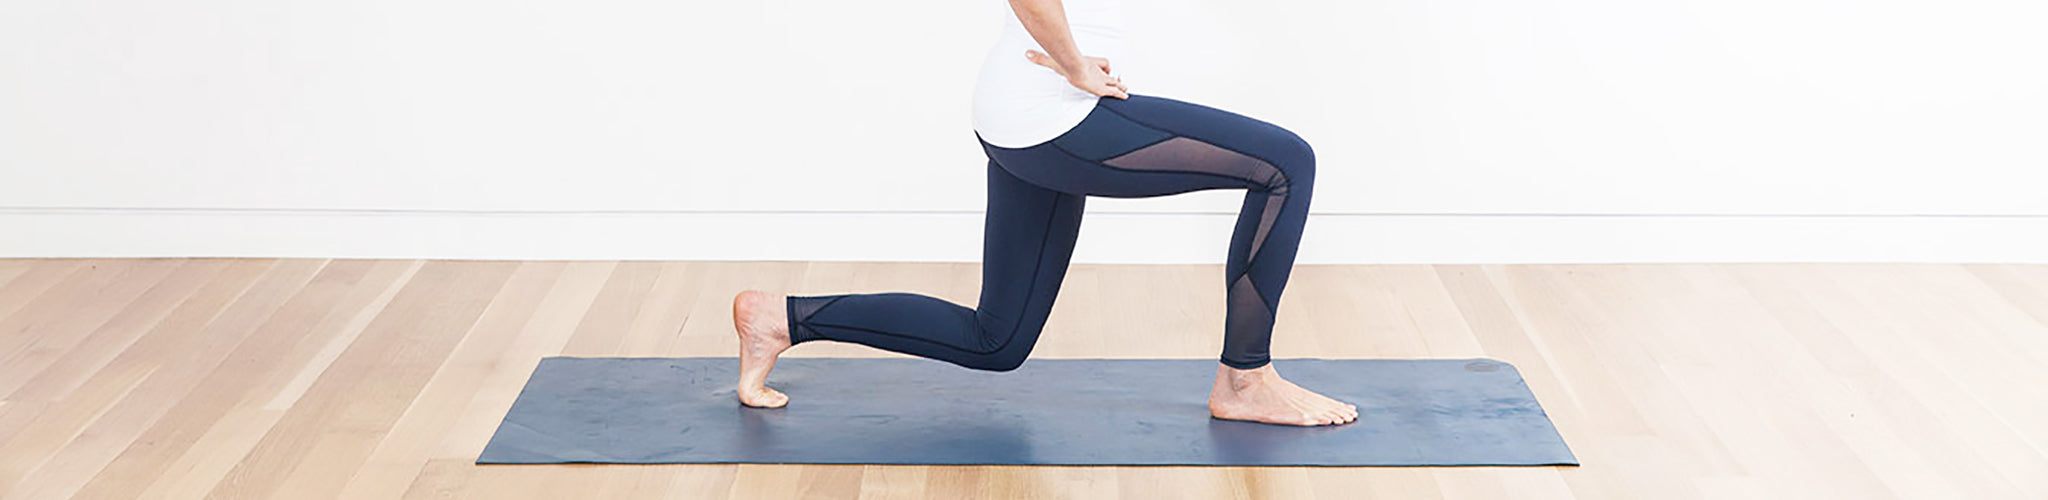 https://www.bodylove-pilates.com/ daily  https://www.bodylove-pilates.com/products/an-introduction-to-bodylove-pilates  2020-05-03T21:30:28-04:00 daily  https://cdn.shopify.com/s/files/1/0985/0568/products/workout-demo.jpg?v=1480114575  An Introduction ...